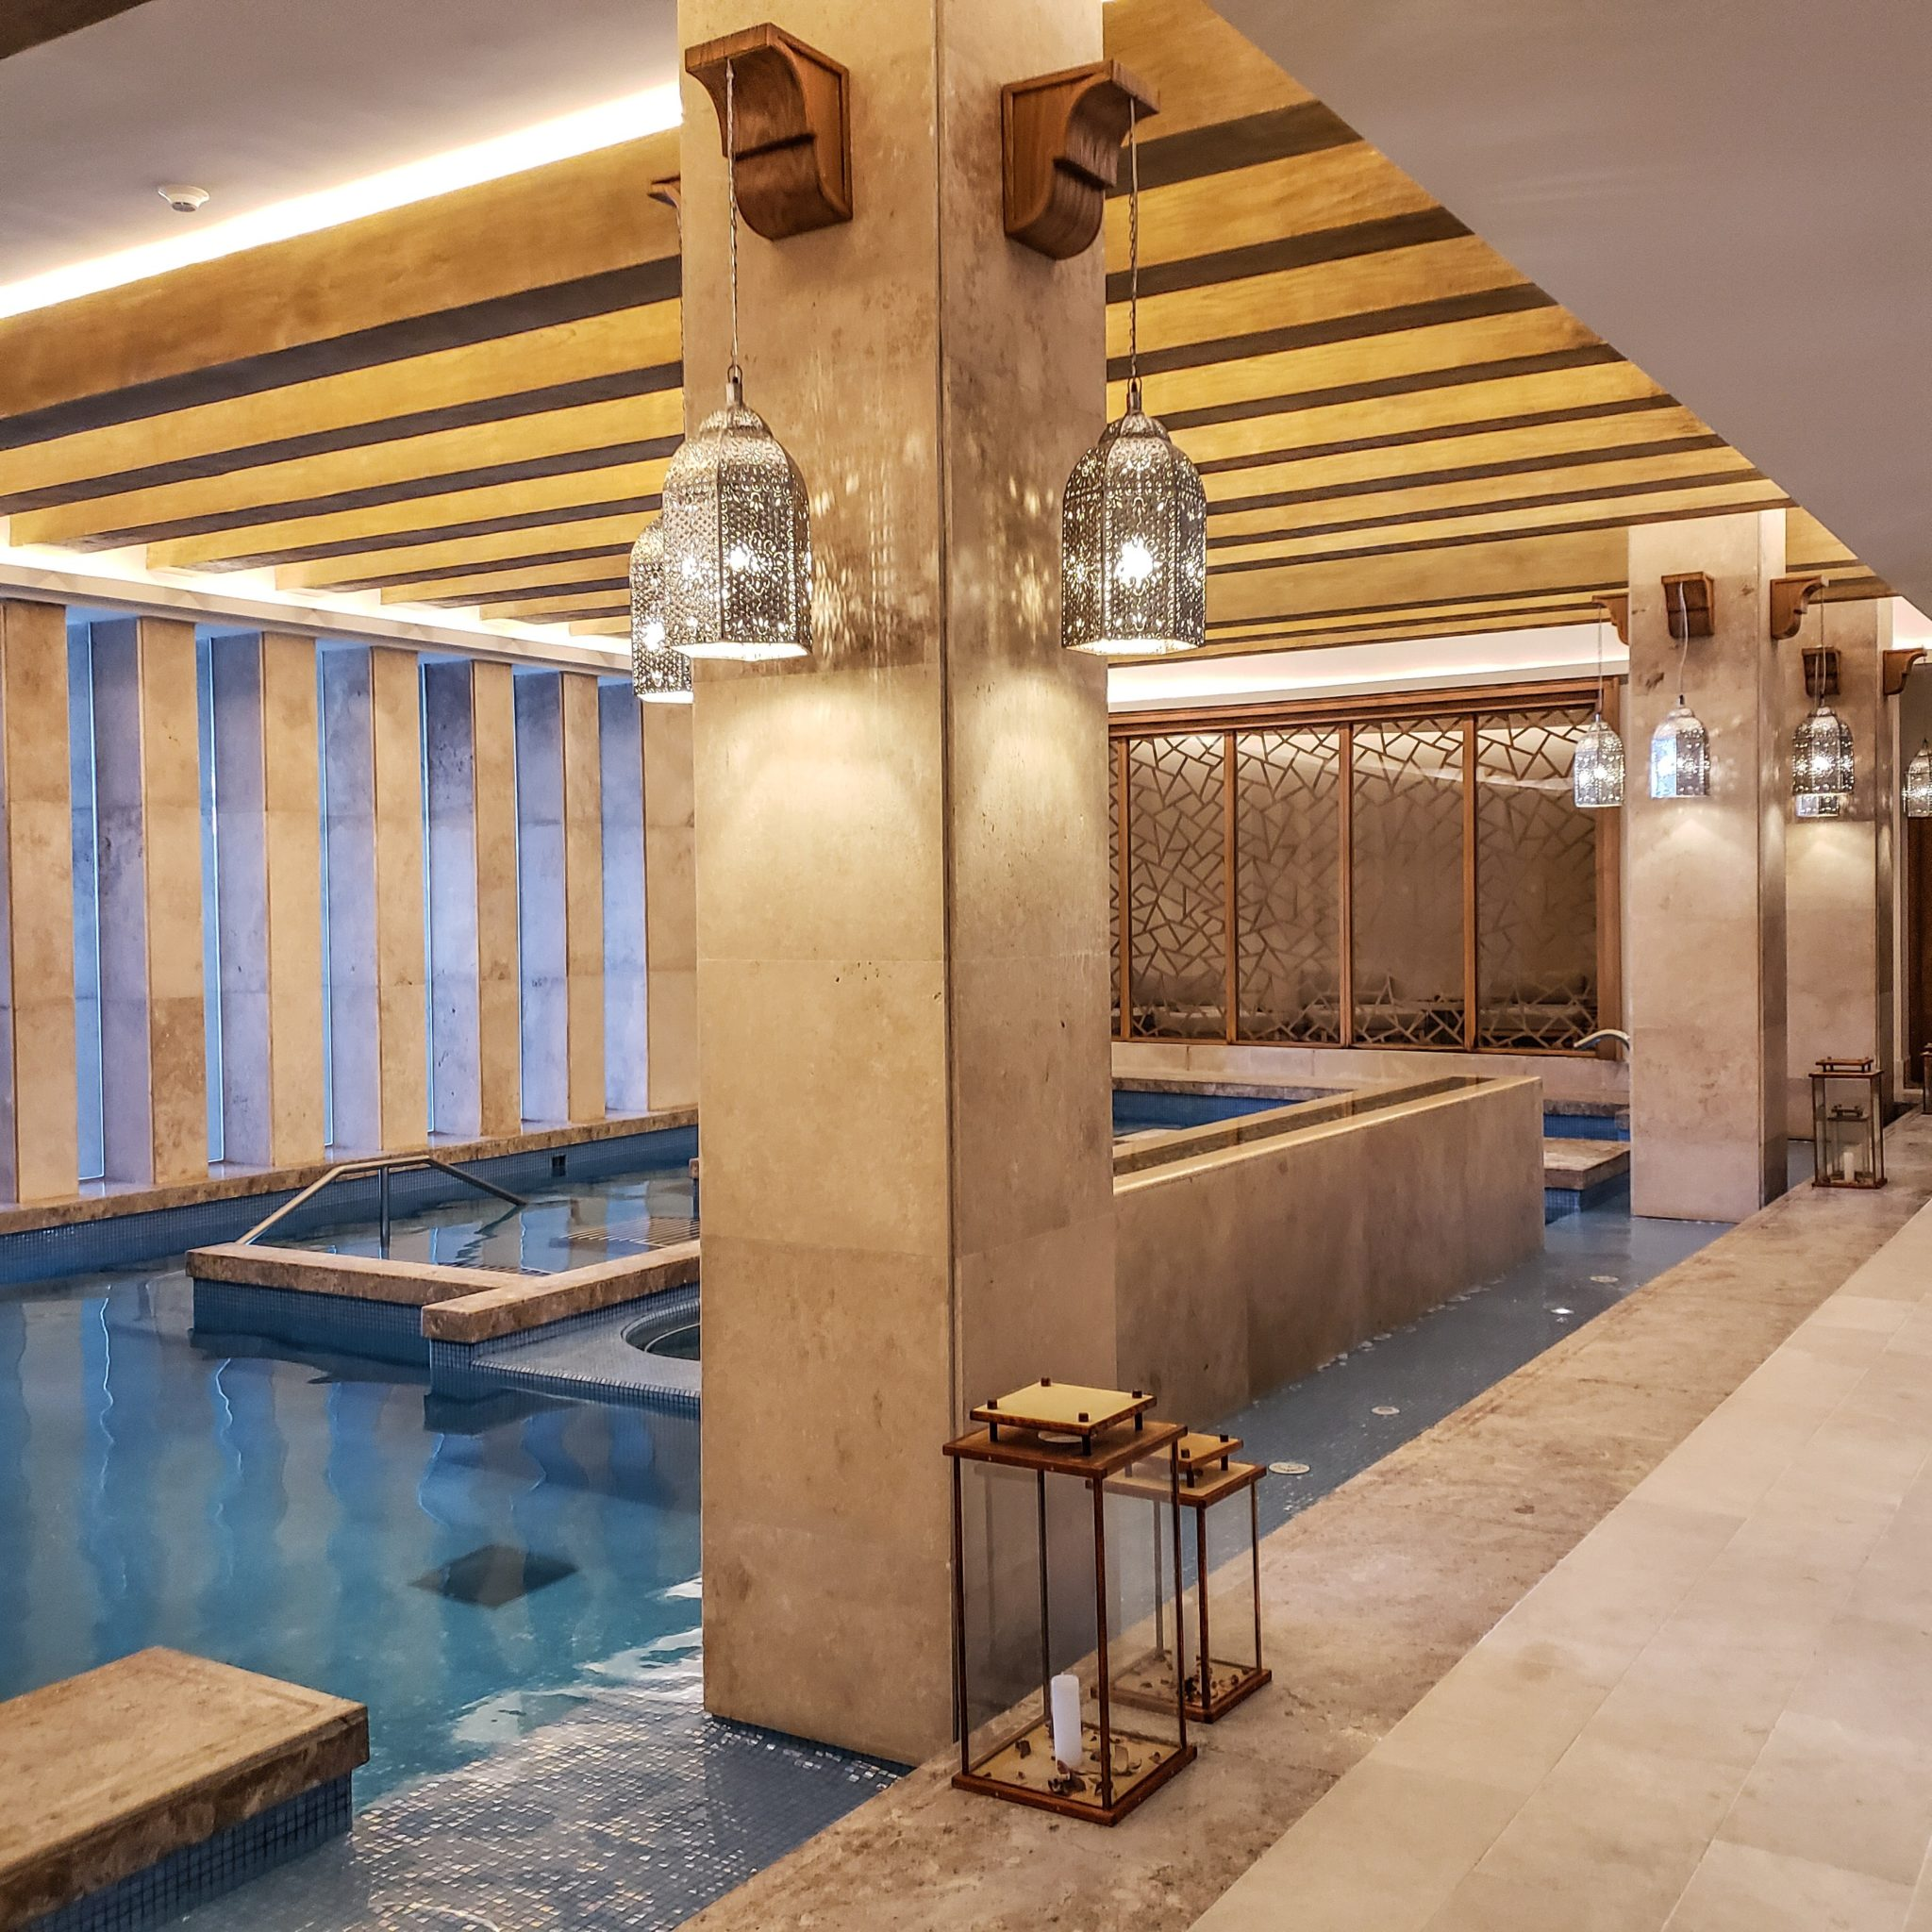 Haven Riviera - Cancun - Haven Resorts - Mexico - Quintana Roo - Spa - Hydrotherapy Circuit